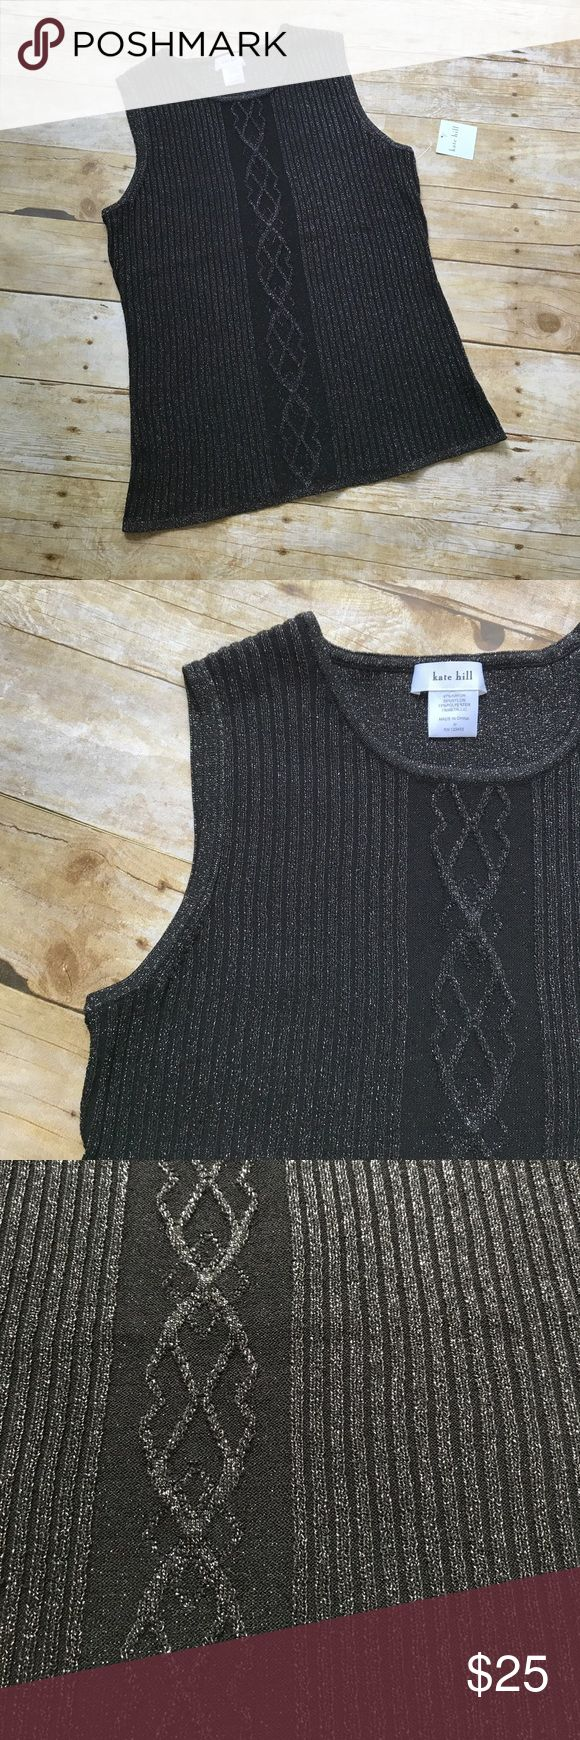 "Kate Hill Black Metallic Sleeveless Sweater NWT Kate Hill Black Metallic Sleeveless Sweater. Scoop neckline. Size Medium. Measures approximately 16.5"" across at the bust, 24"" from shoulder to hem. From a smoke free home. Kate Hill Sweaters"